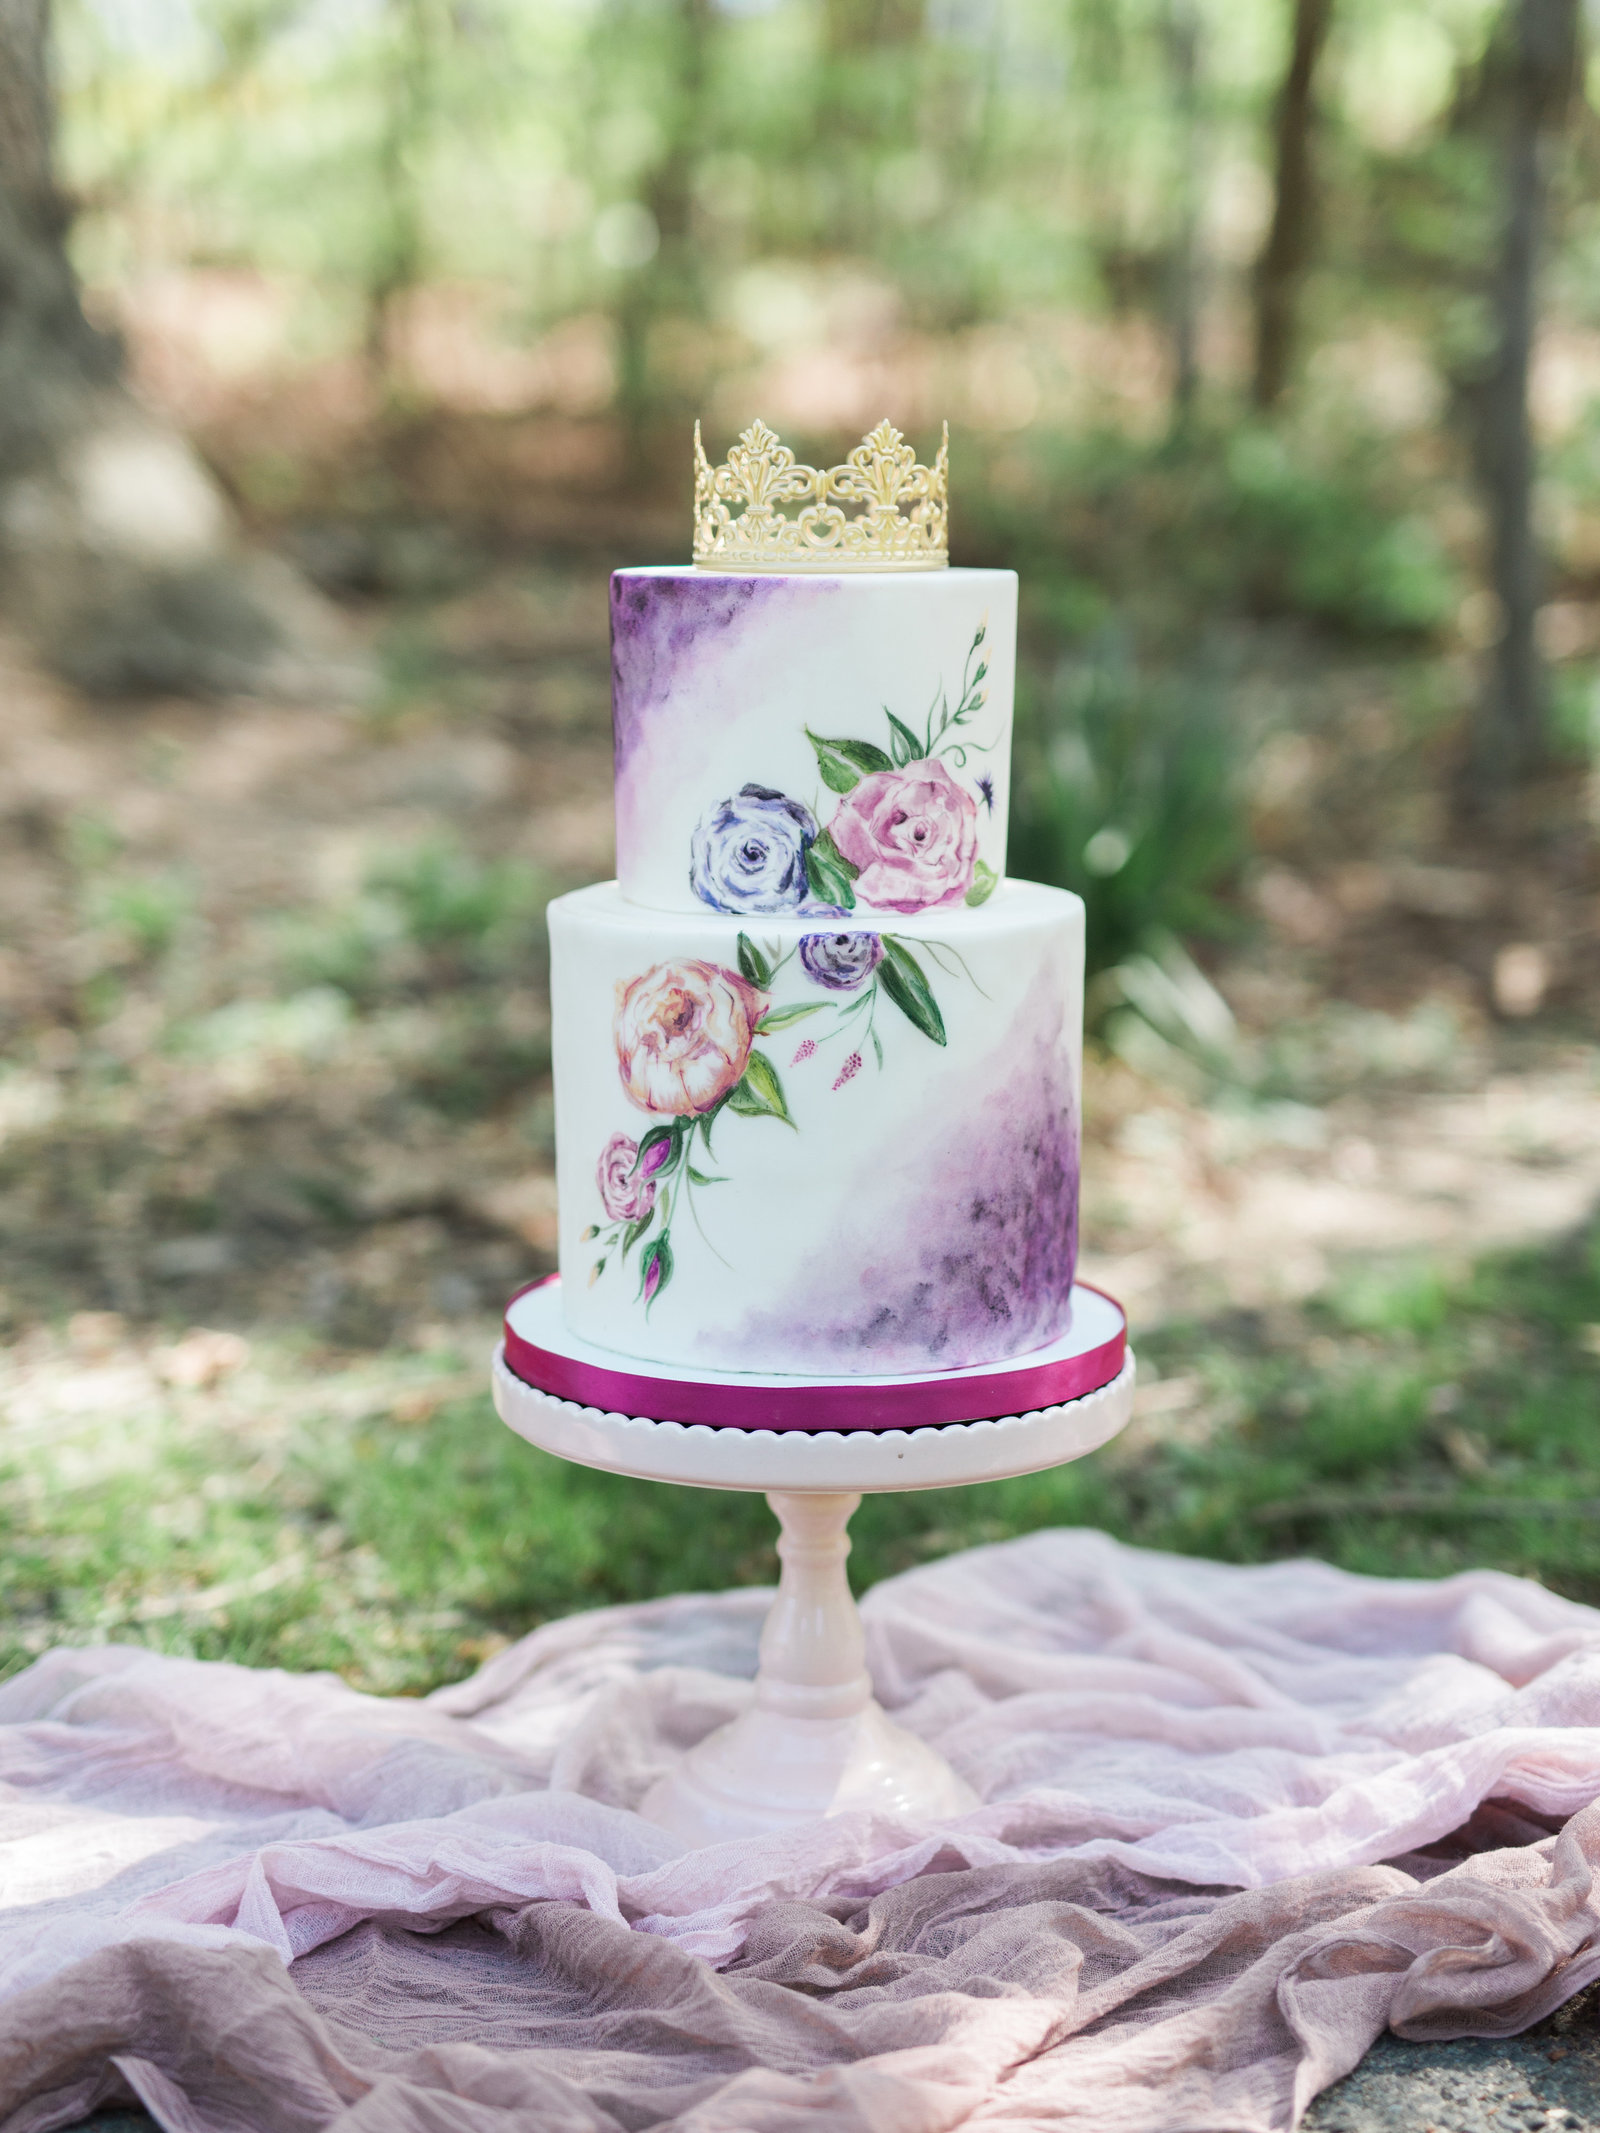 Sleeping Beauty  wedding cake  Inspired Styled Shoot at Swannanoa-Images for Submissi-0166 (2)